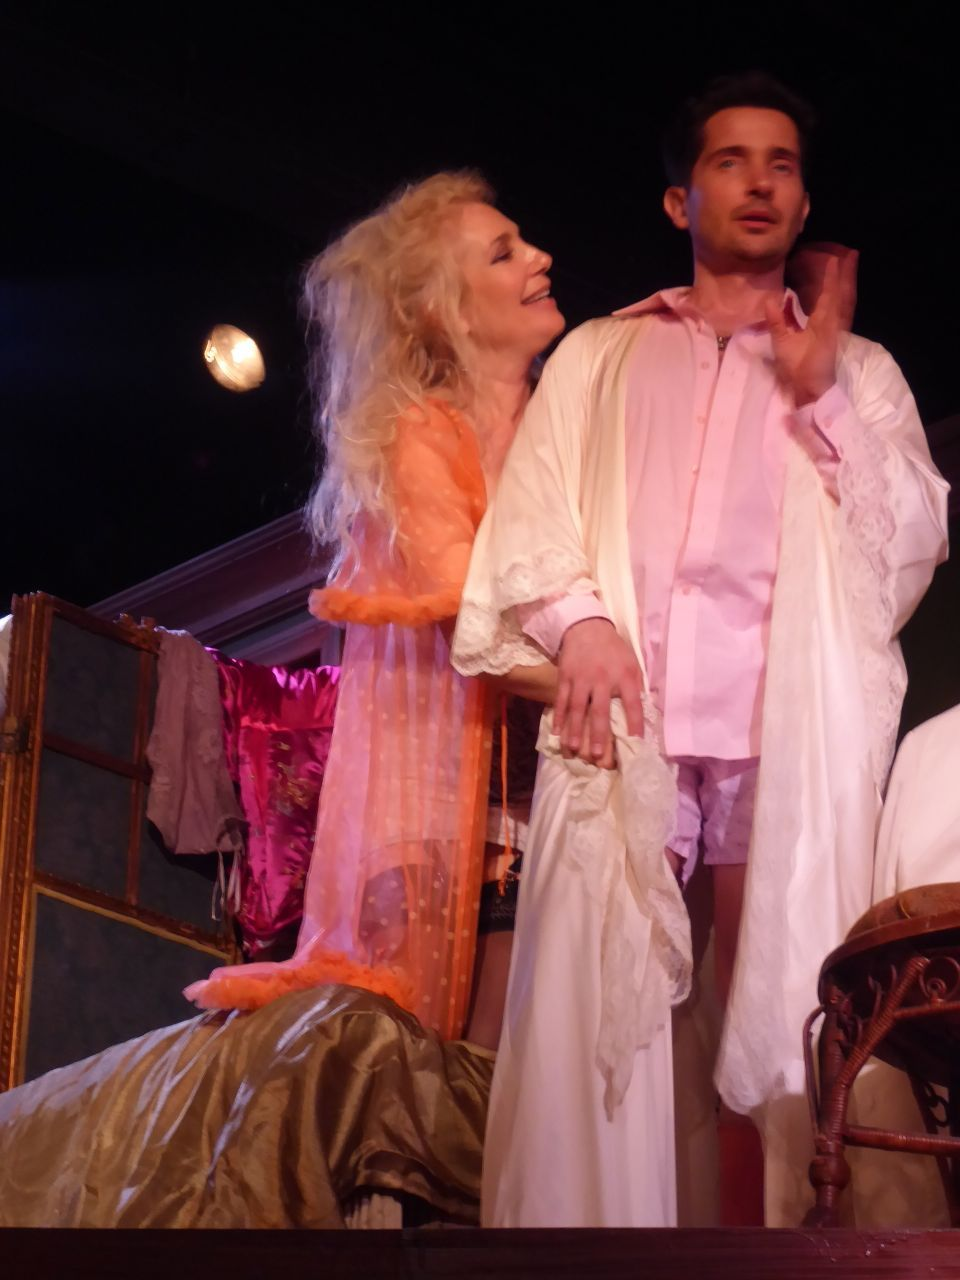 Susan Priver (Myrtle) and Daniel Felix De Weldon (Lot) in a poignant moment from Kingdom of Earth, Odyssey Theater Los Angeles.